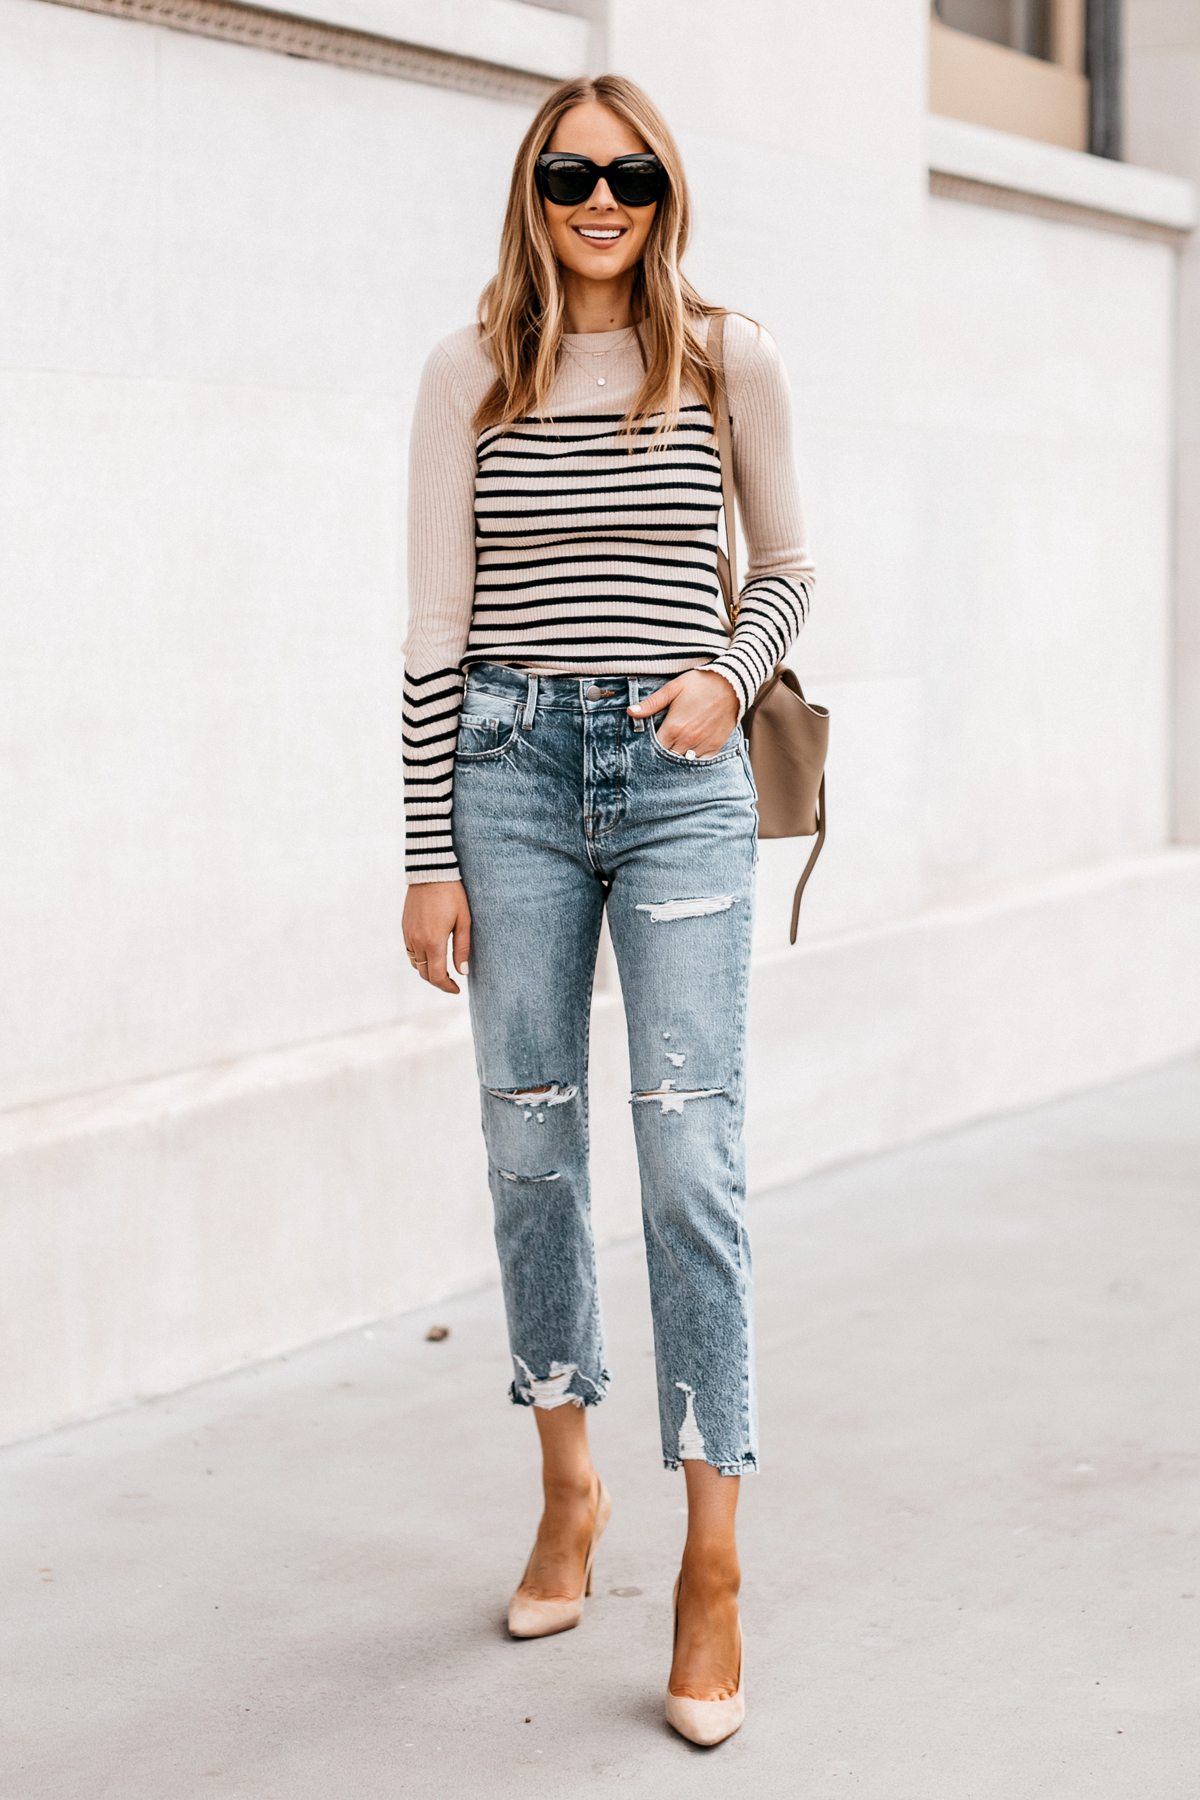 Fashion Jackson Wearing Rag and Bone Striped Long Sleeve Top Frame Ripped Boyfriend Jeans Nude Pumps Street Style Outfit 1